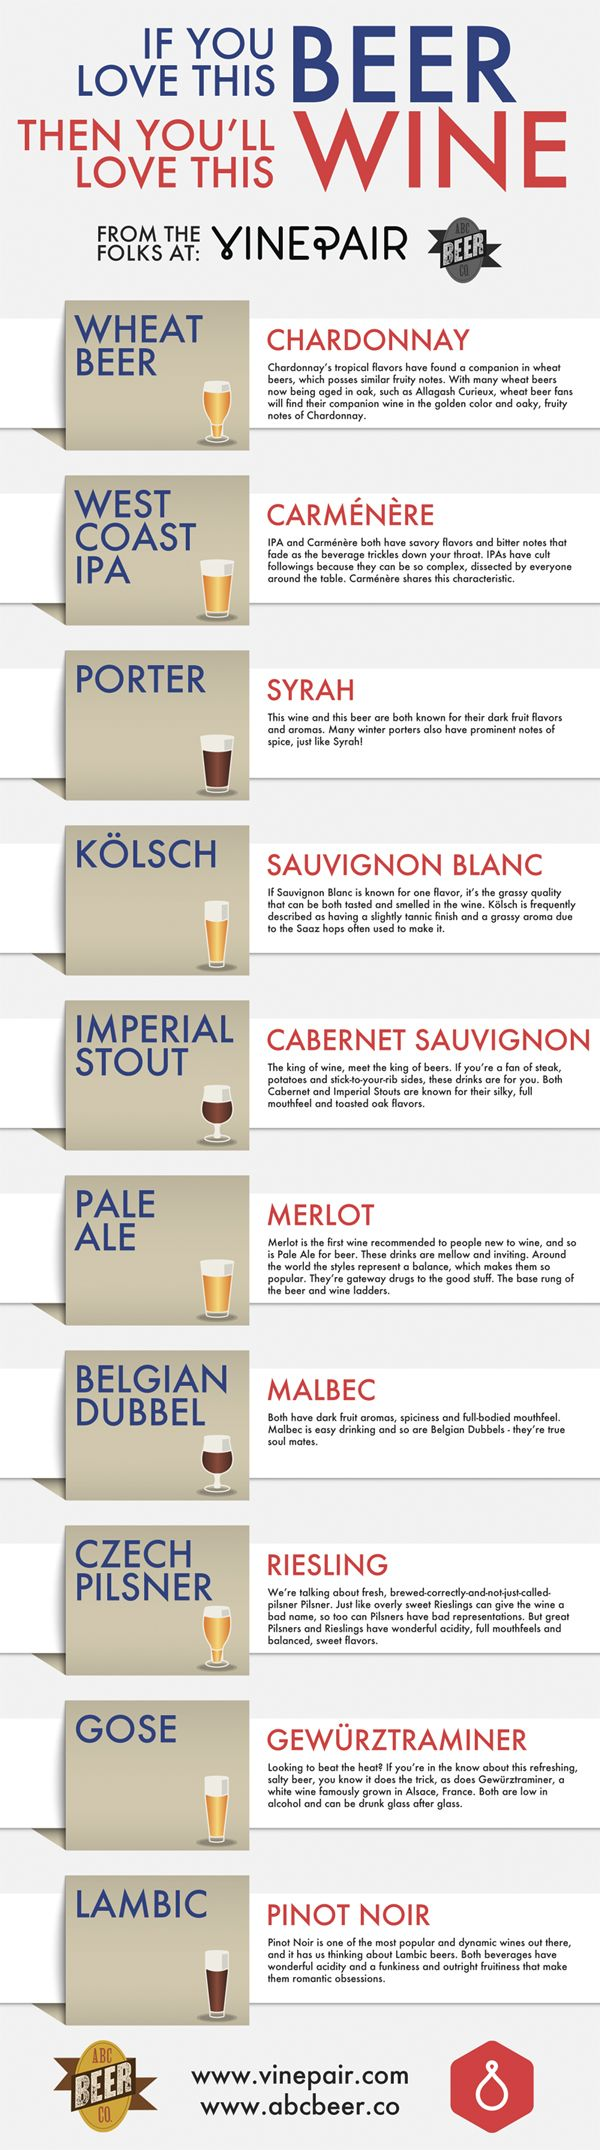 How to Pair Wine with Beer, Because Pairing with Food is Not Drunk Enough